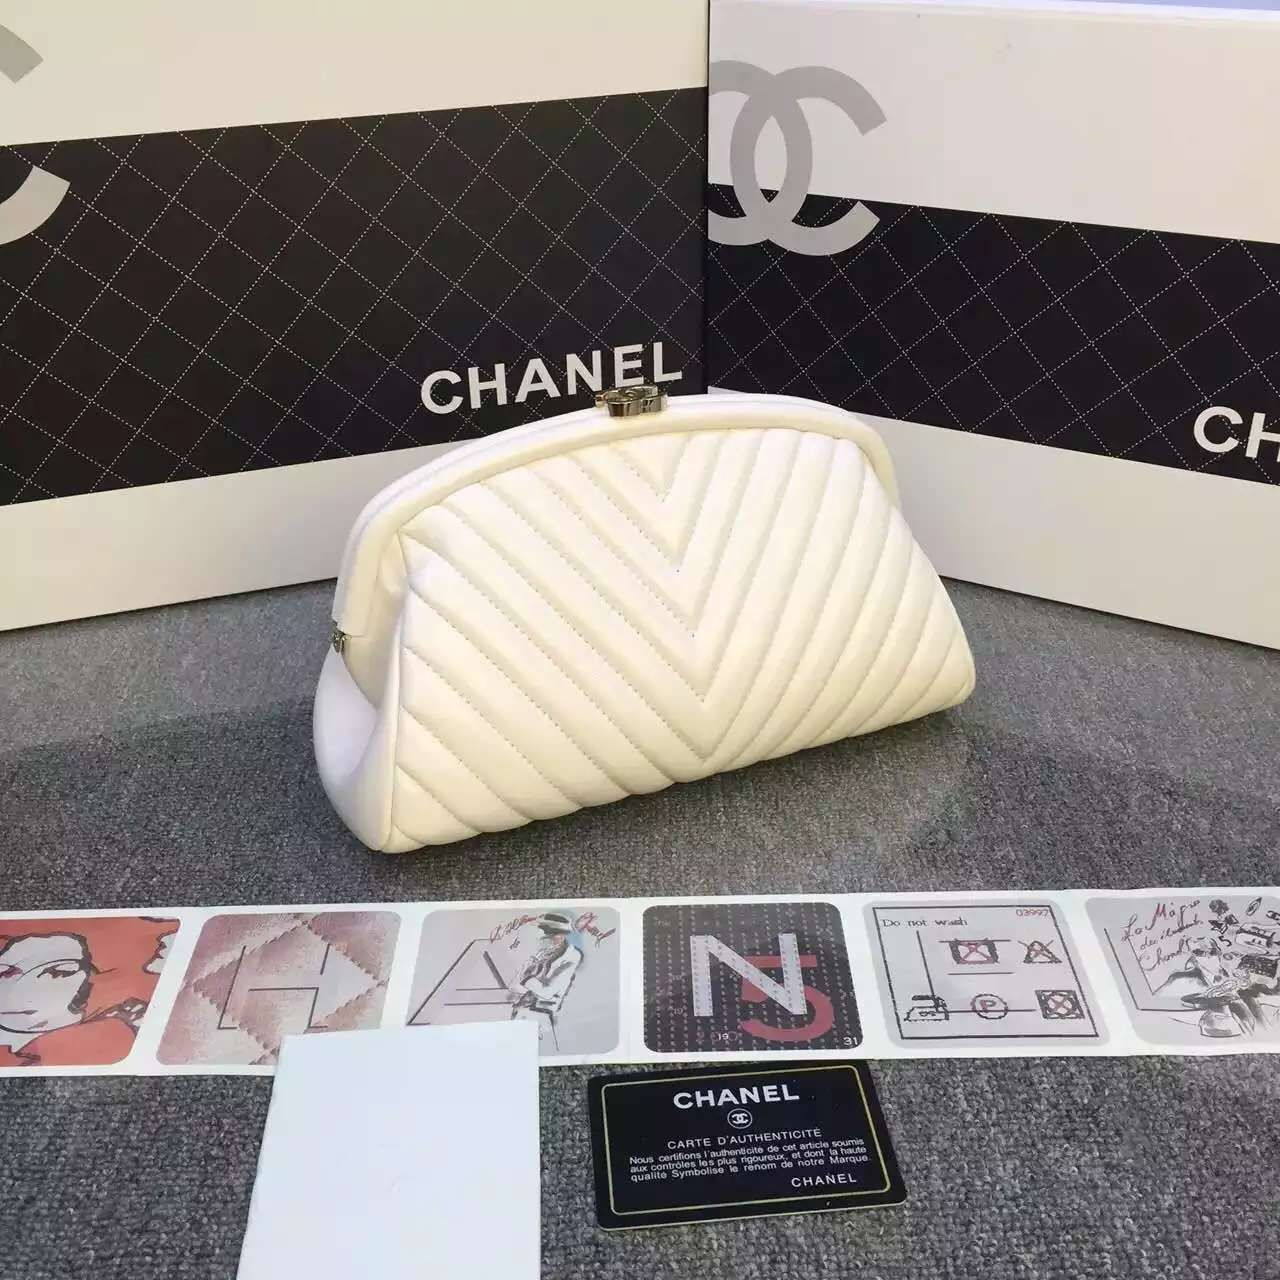 chanel Bag, ID : 35208(FORSALE:a@yybags.com), shop chanel com, chanel com shop online, chanel fashion handbags, e shop chanel, find chanel store, cheap authentic chanel bags online, chanel handbag purse, chanel online store, order chanel online, chanel wallet buy, chanel slim briefcase, chanel video, chanel purse bag, chanel the handbag shop #chanelBag #chanel #chanel #travelpack